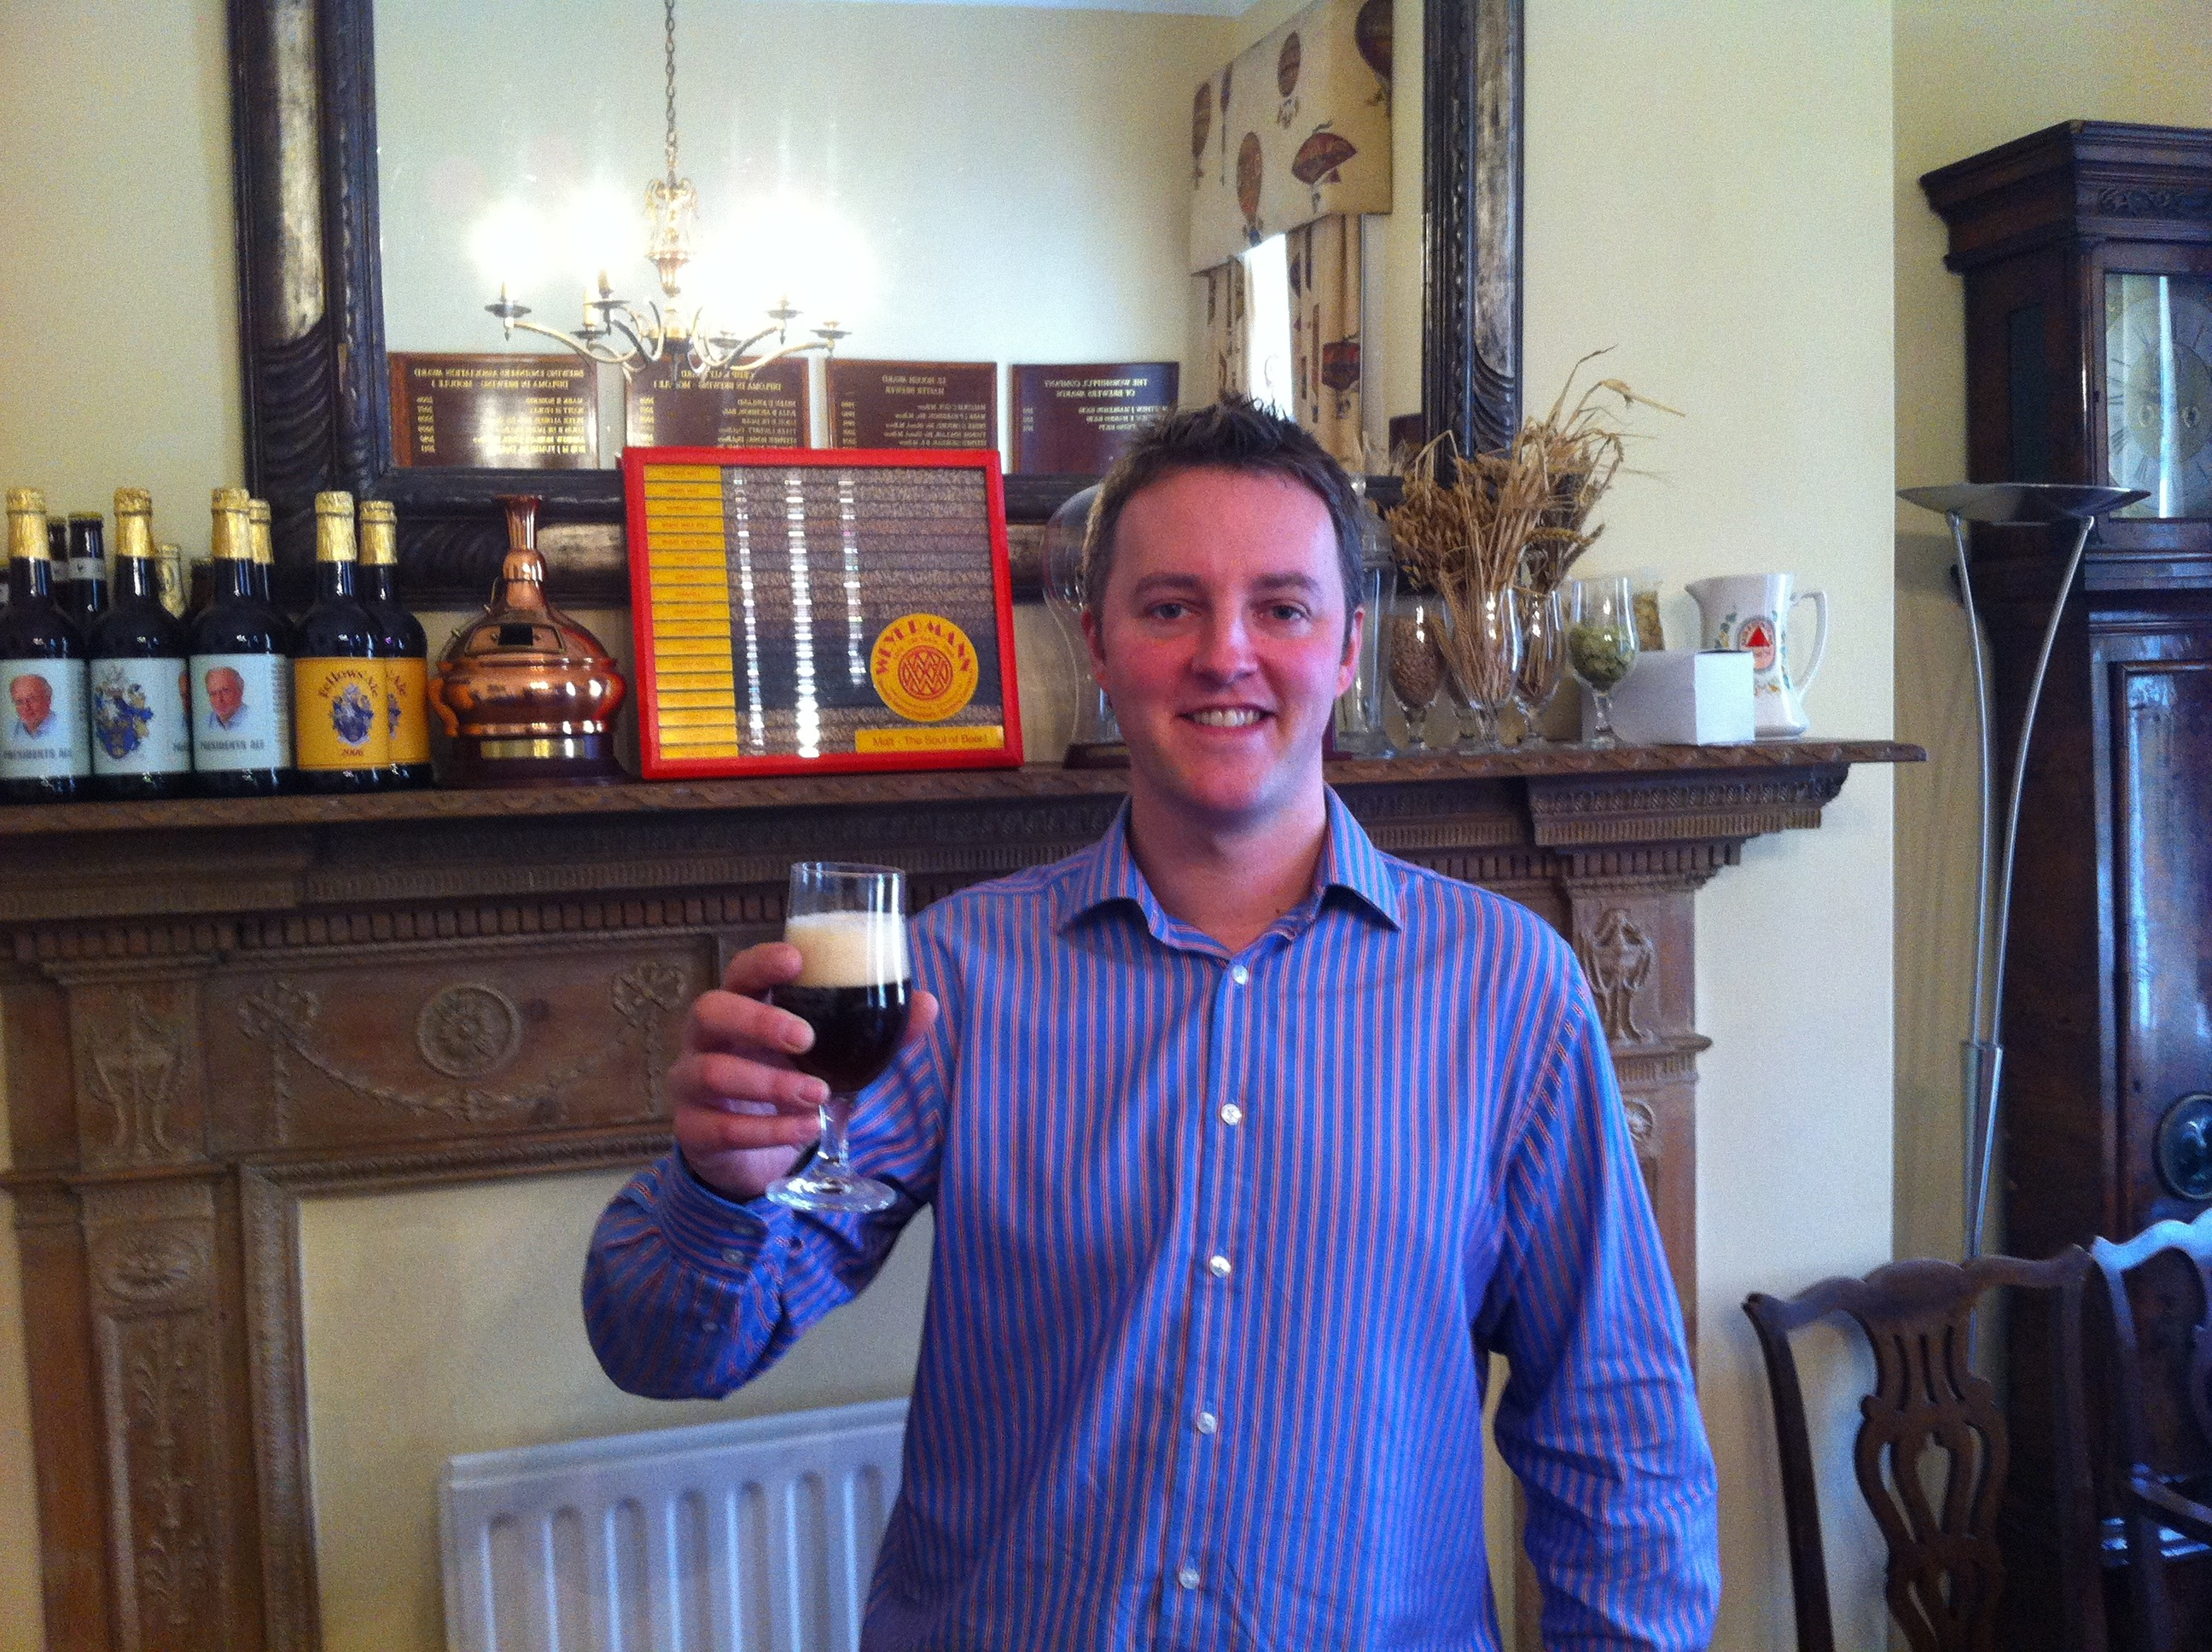 Tom Gee, Oxford, England<br>Accredited on: 20th March 2012